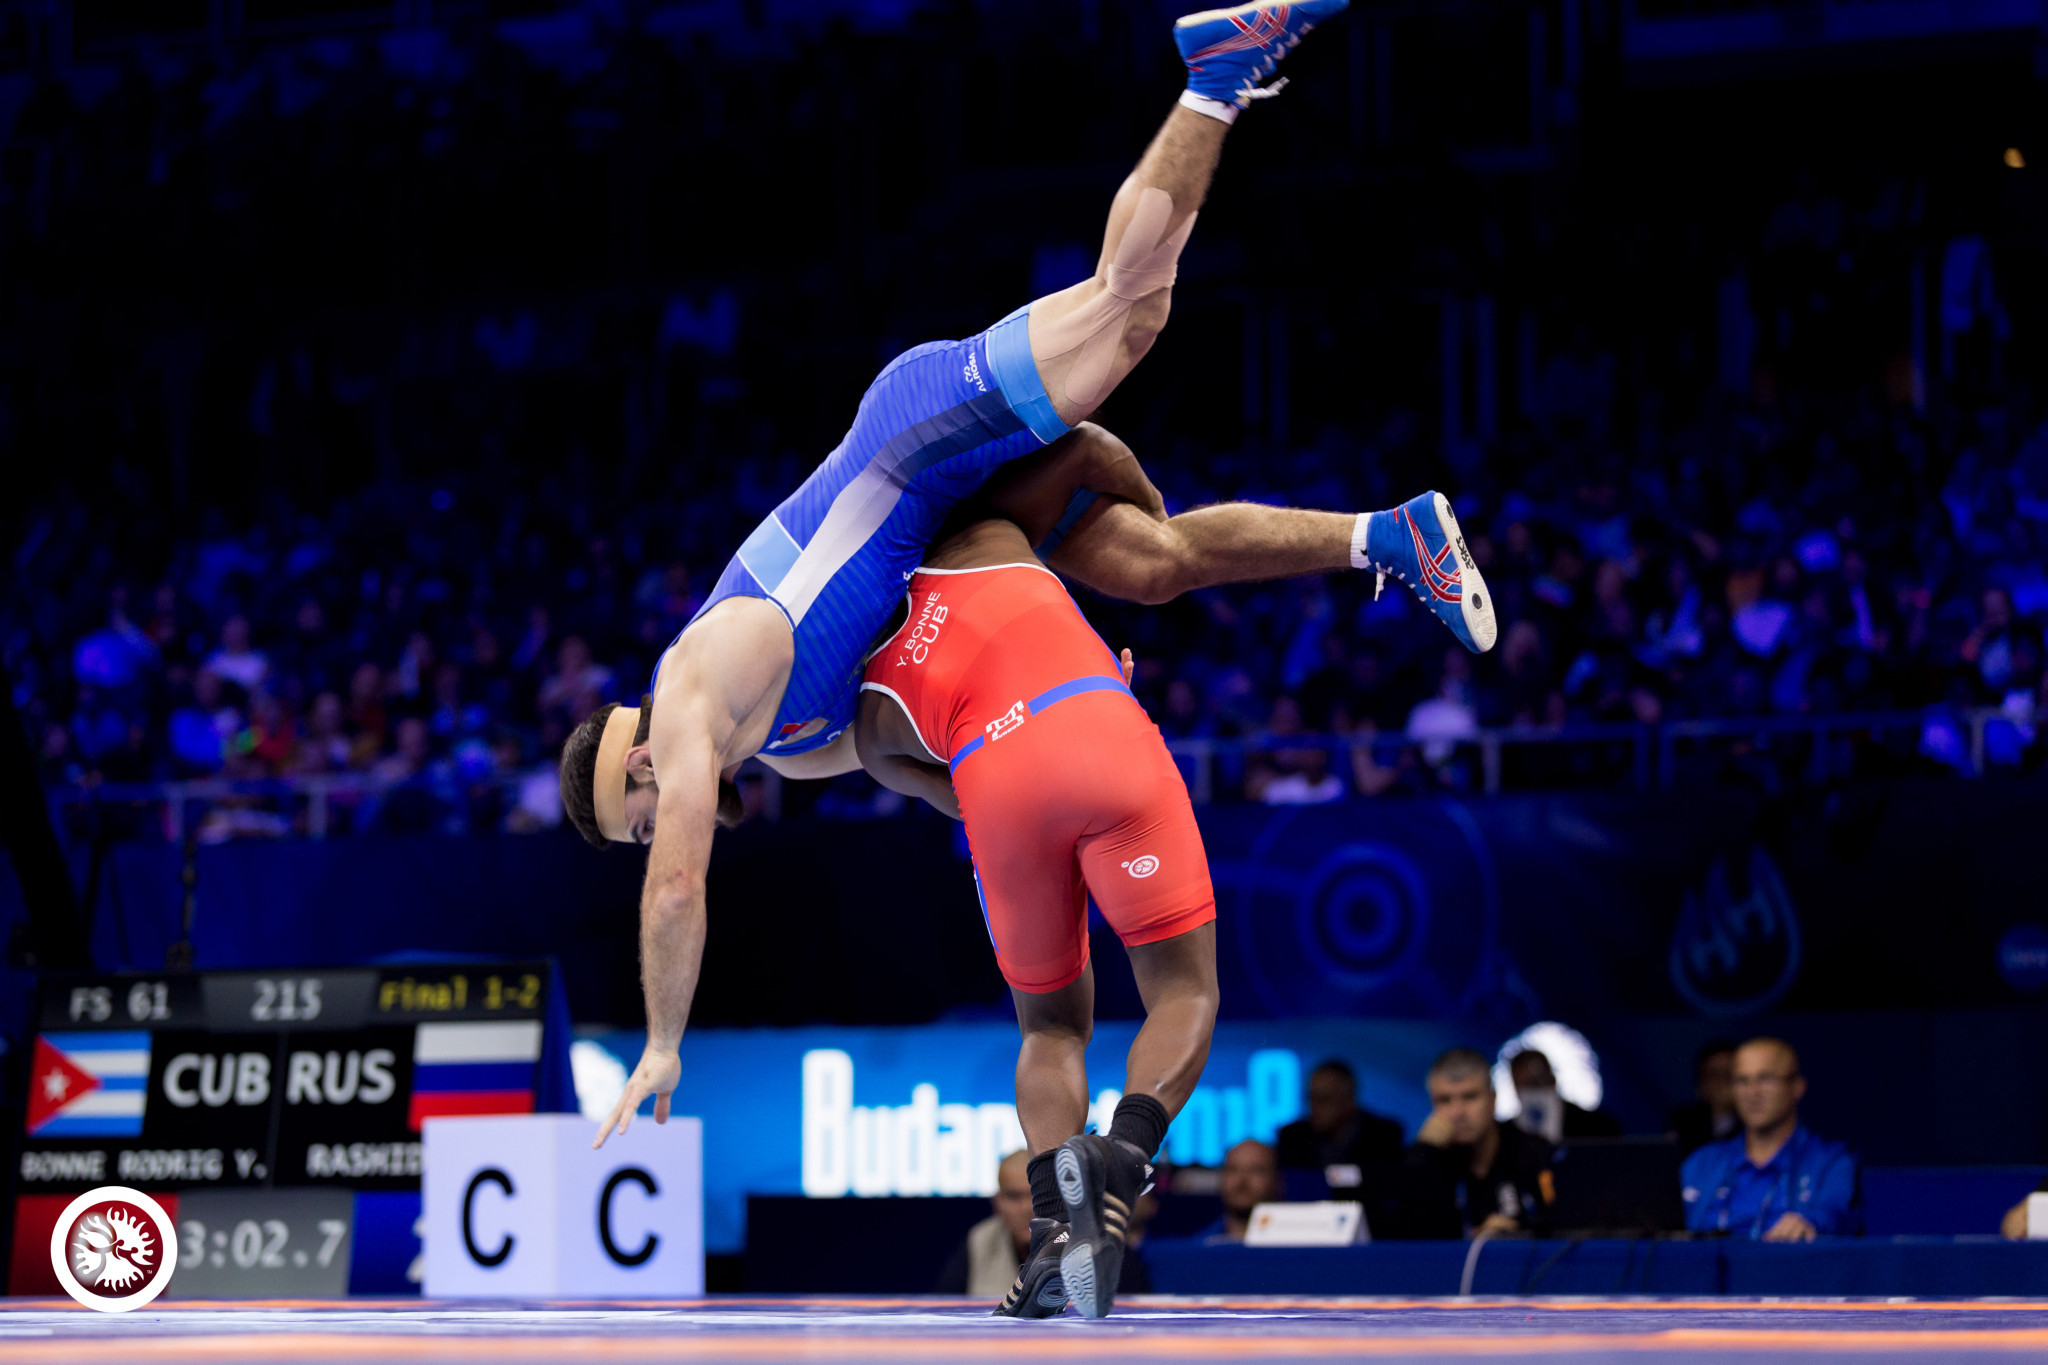 Day two of medal action at the 2018 Wrestling World Championships